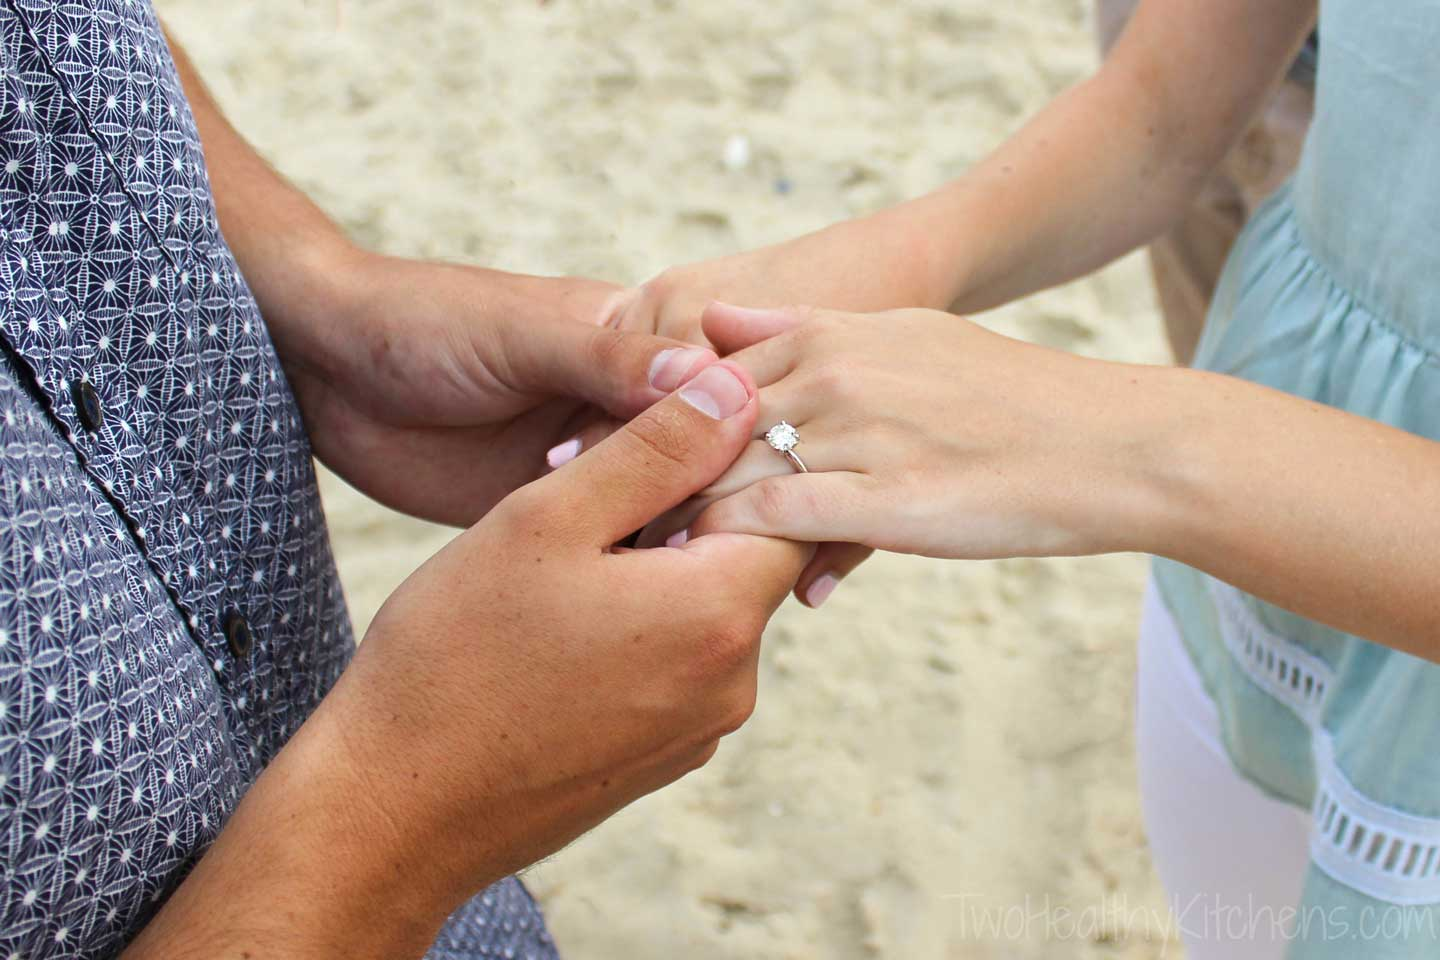 We celebrate lots of traditions and family moments together in North Carolina's OBX, but a long-anticipated engagement is a highlight we'll never forget!